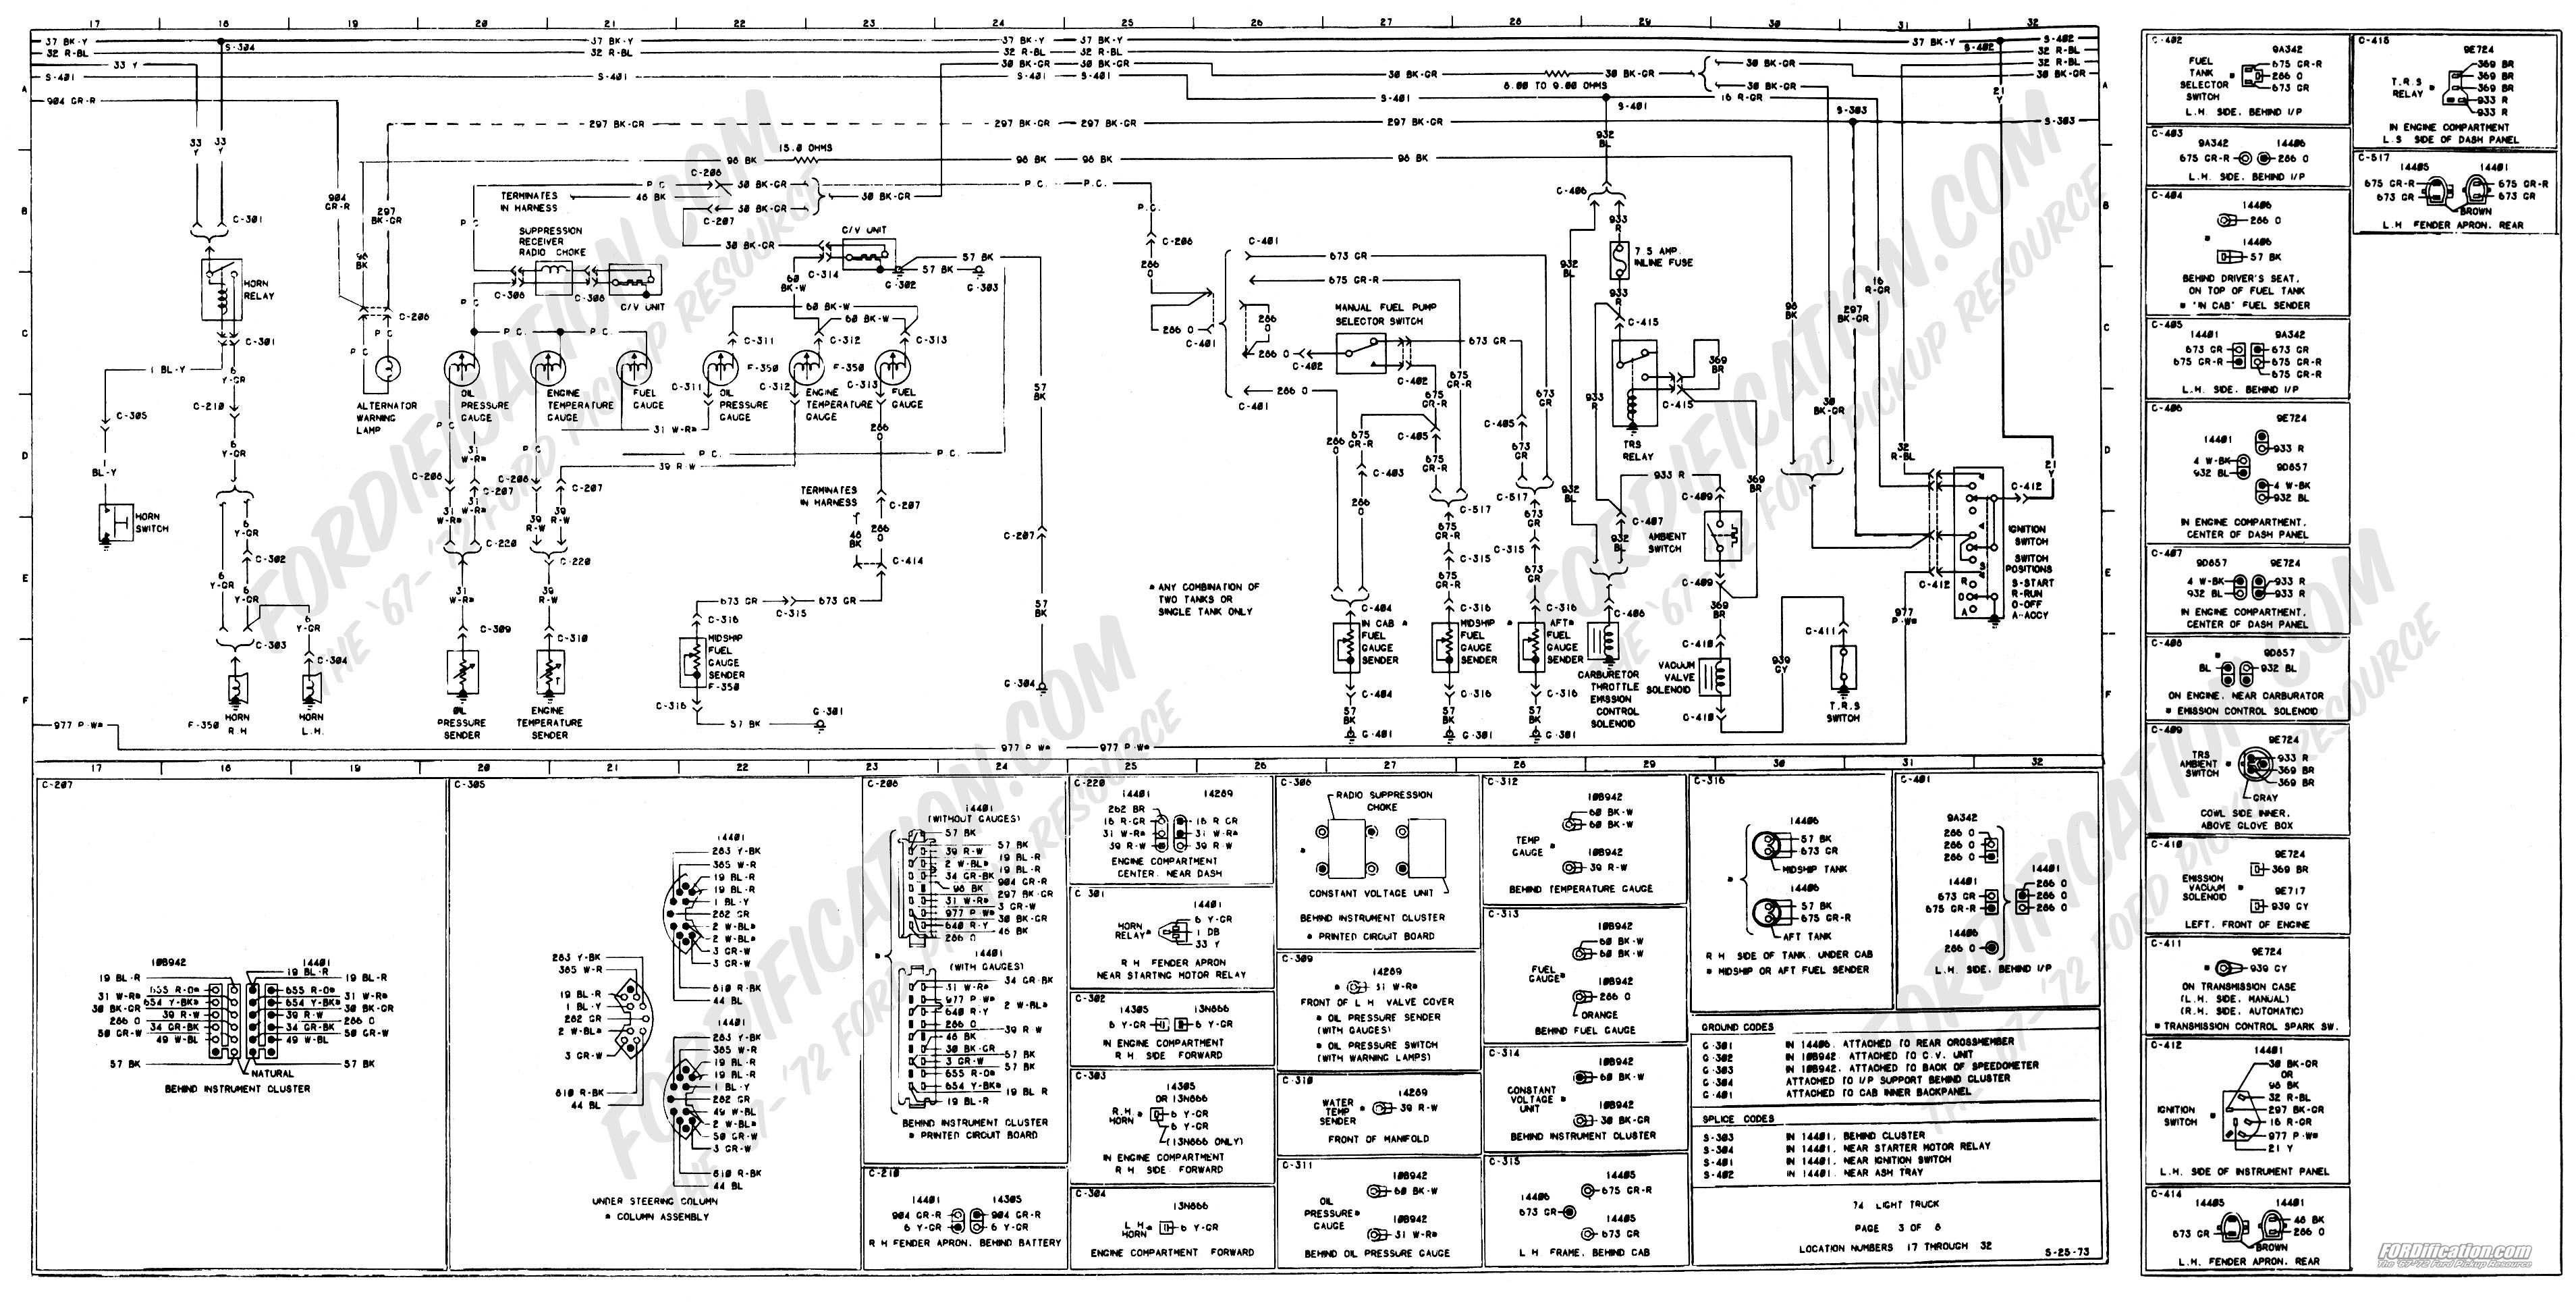 74 corvette wiring diagram wiring diagram and fuse panel diagram 78 Corvette Wiring Diagram 1977 camaro dash wiring diagram further dodge shifter wiring diagram moreover 84 chevy steering column wiring 78 corvette wiring diagram